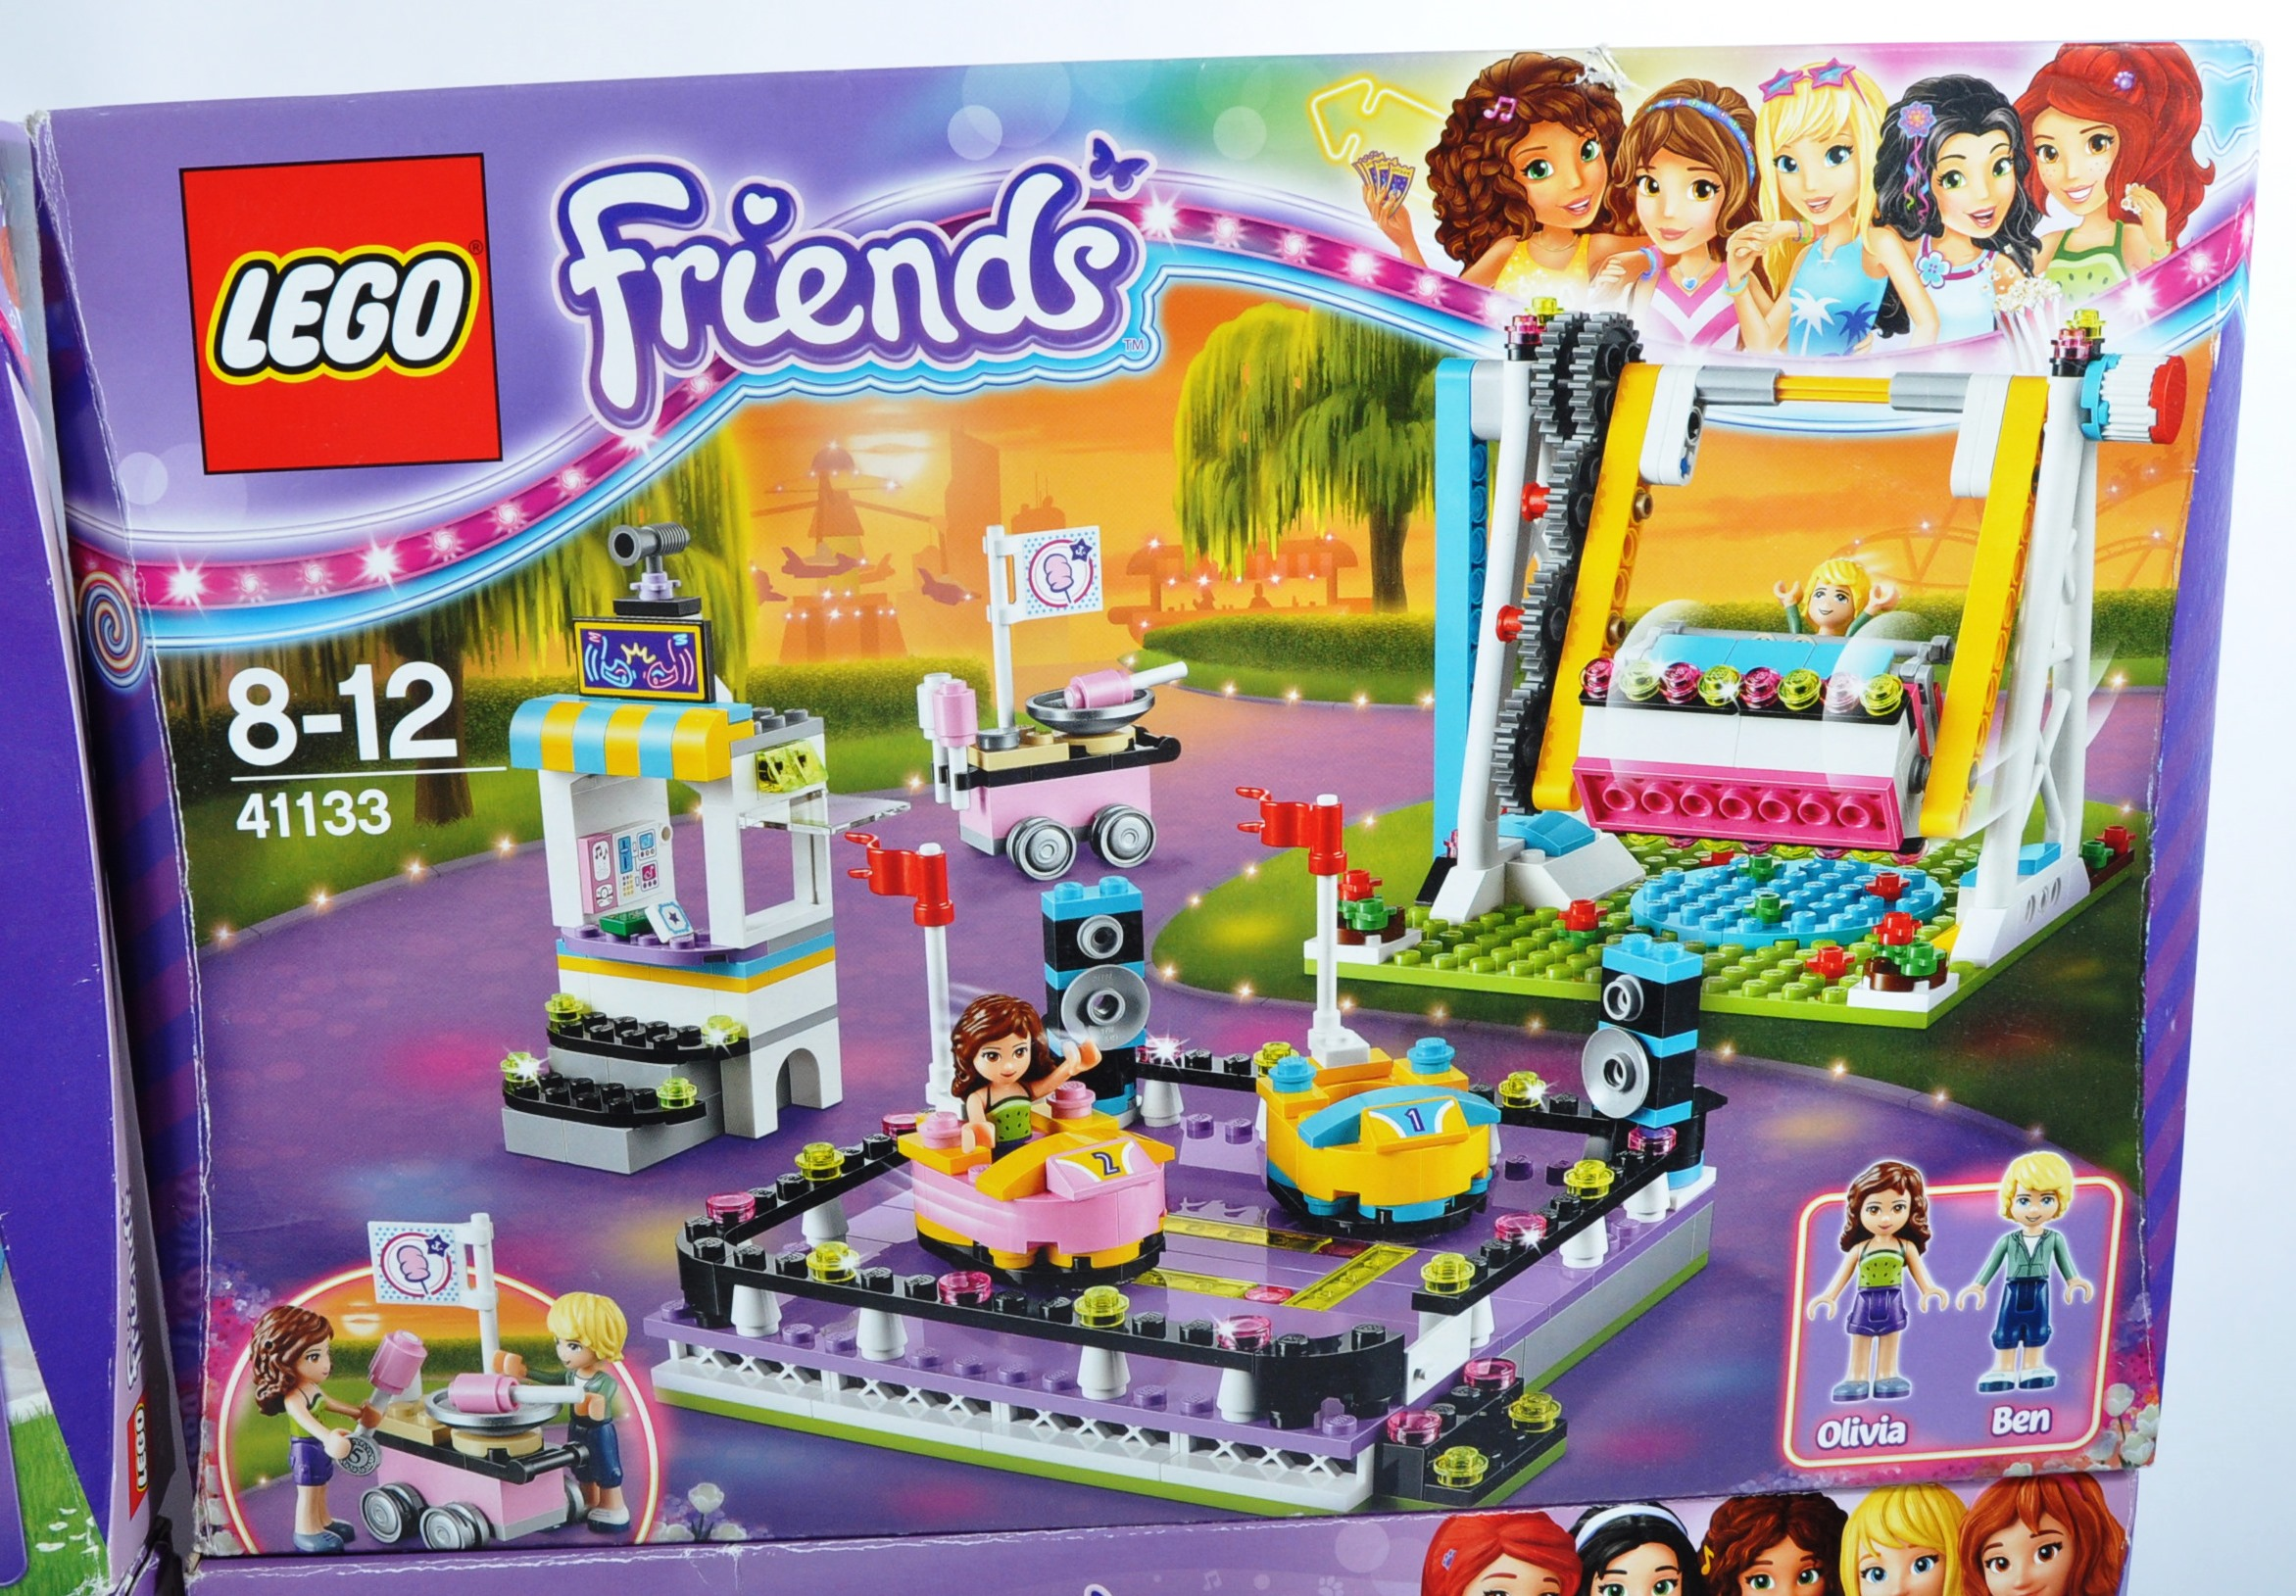 LEGO SETS - LEGO FRIENDS - COLLECTION OF X5 LEGO FRIENDS SETS - Image 4 of 6